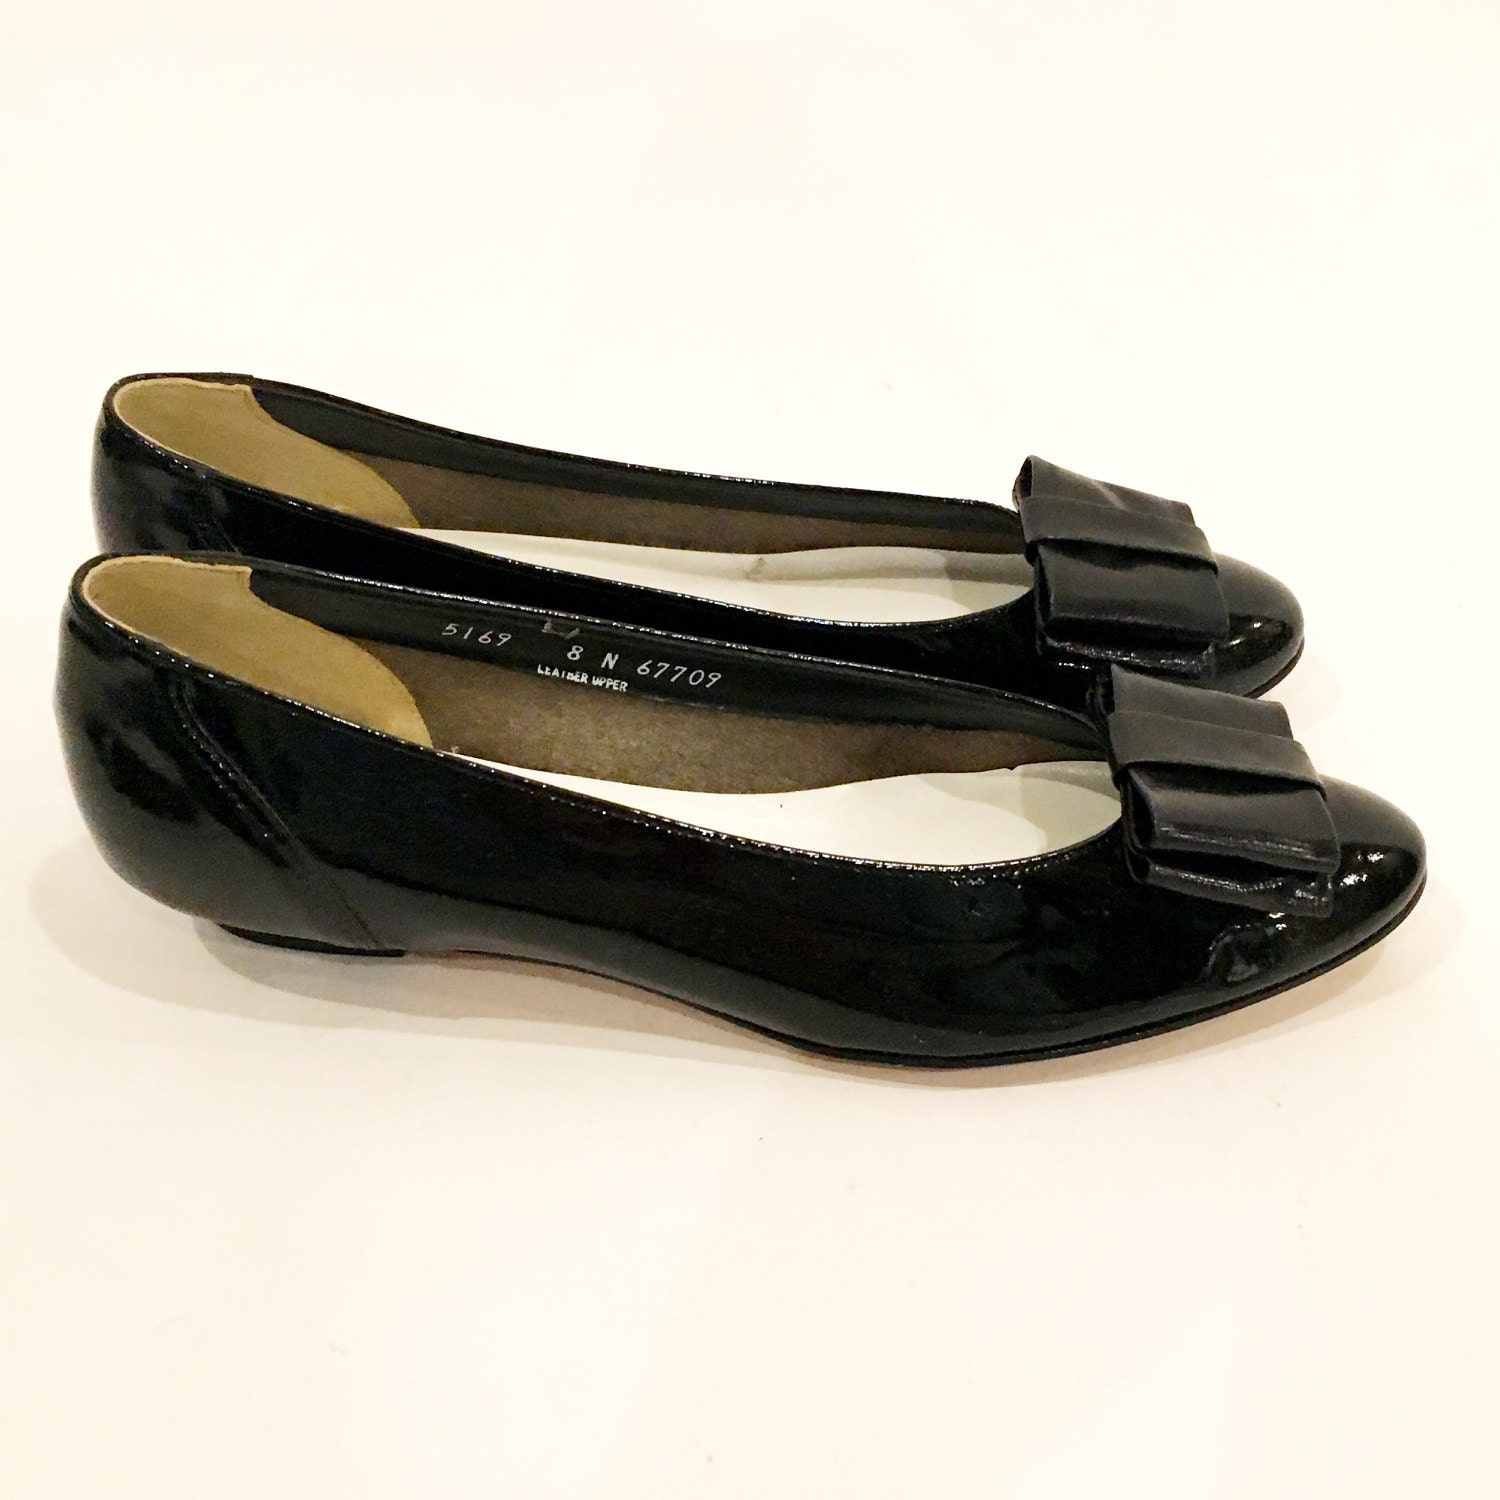 Vintage 70s Black Patent Leather Baby Doll Flats Shoes Brand